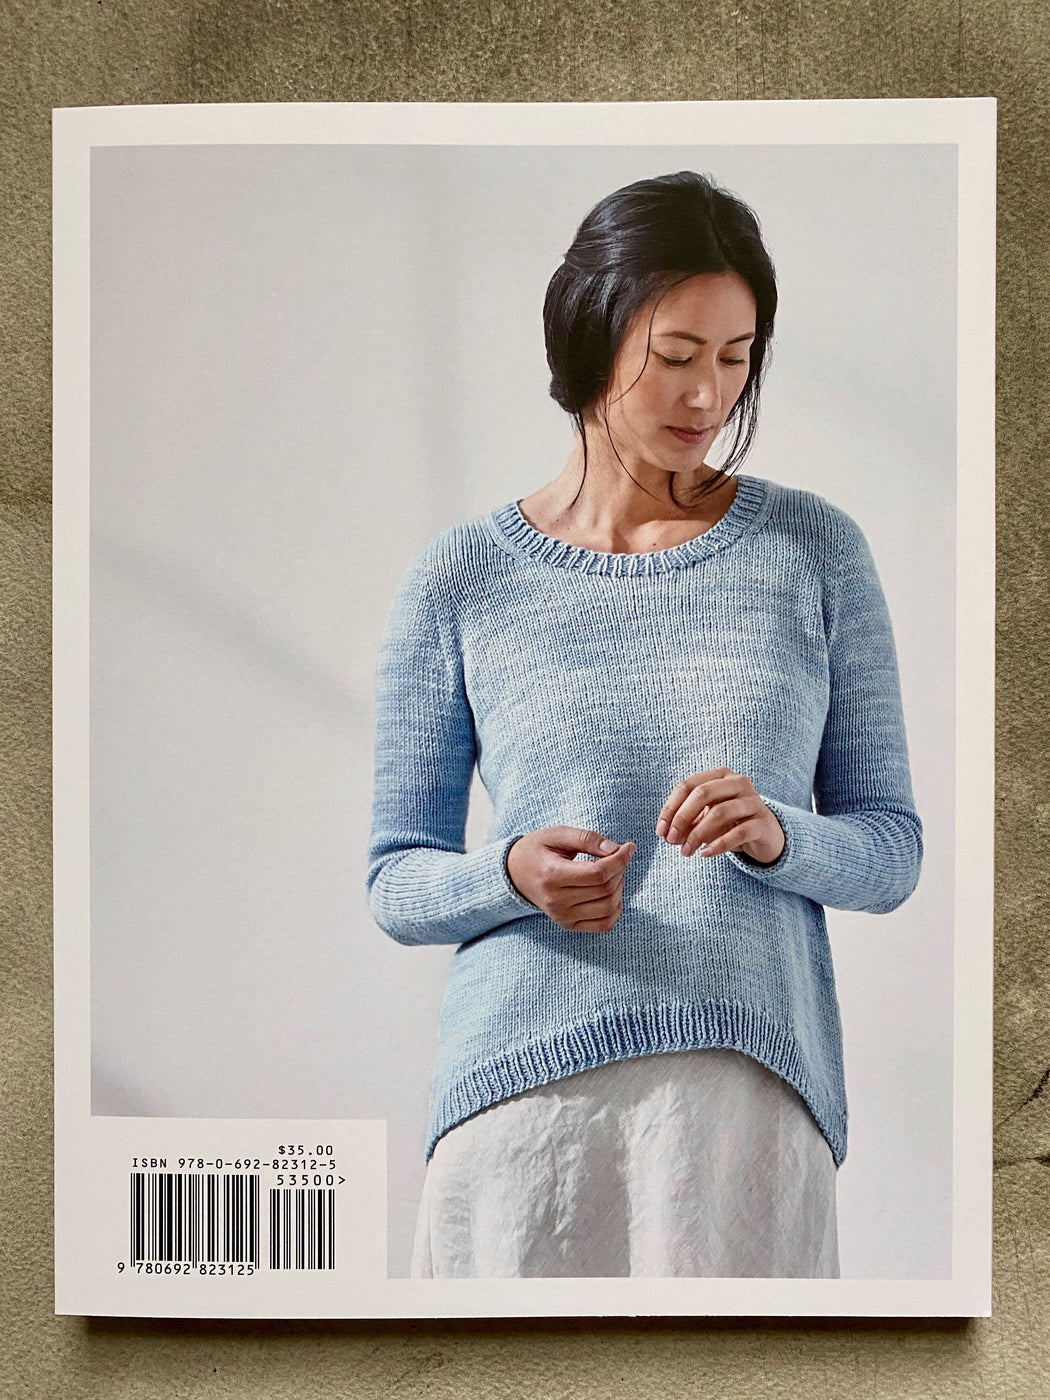 """Cocoknits Sweater Workshop"" by Julie Weisenberger"